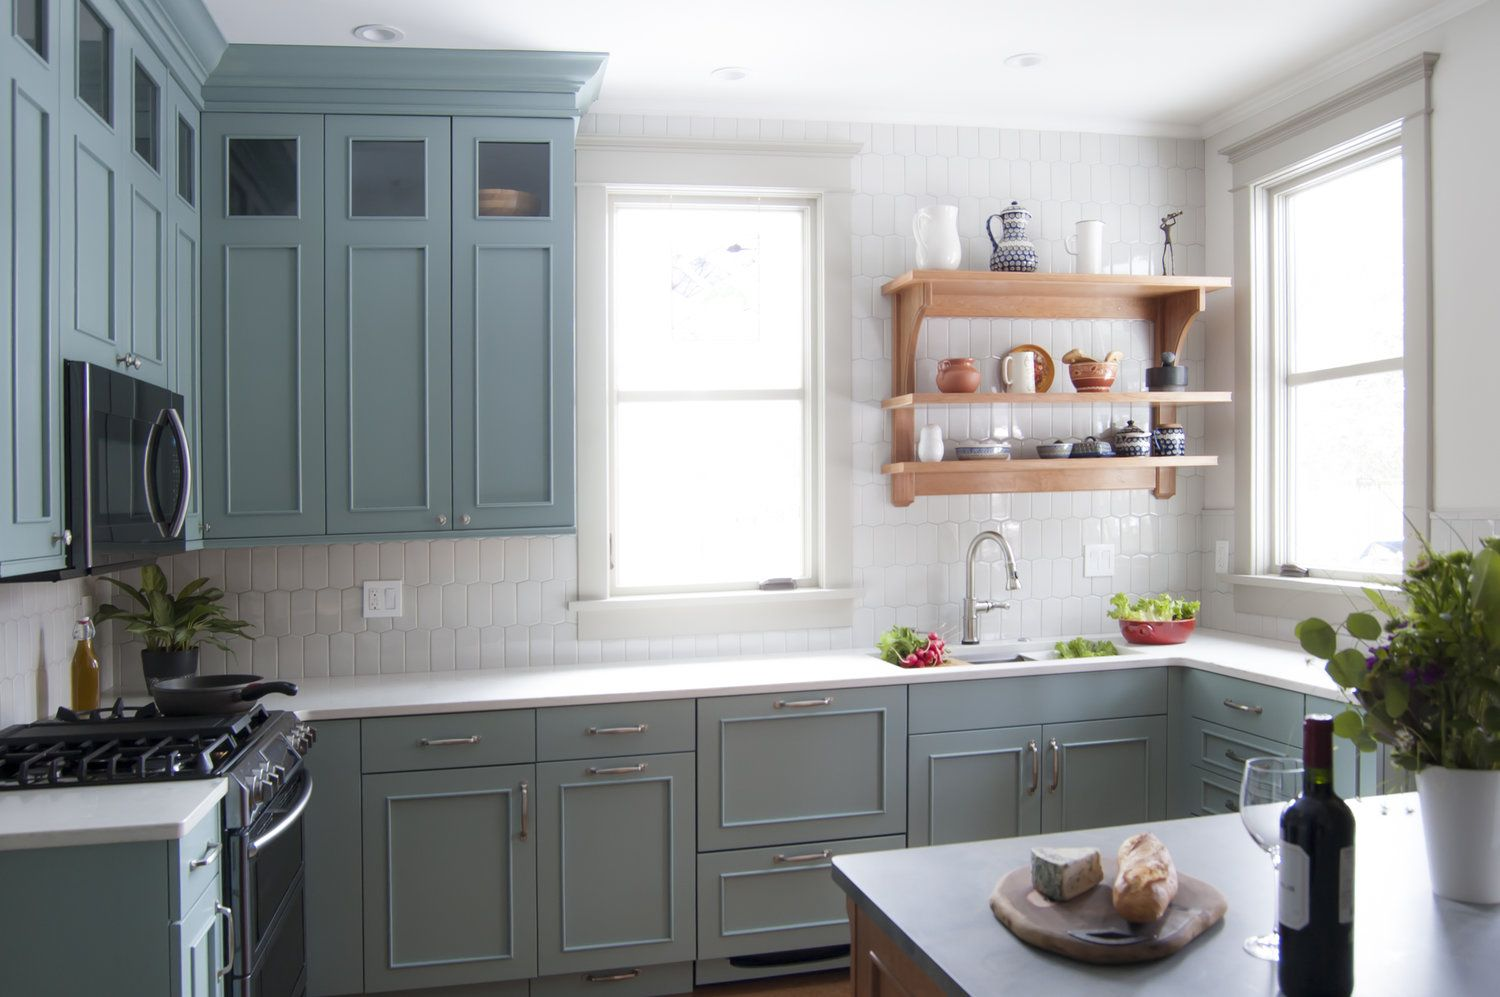 Attractive Beautiful Timeless Kitchen Remodel. Painted Cabinets With Quartz  Countertops And Hive Backsplash Tile.